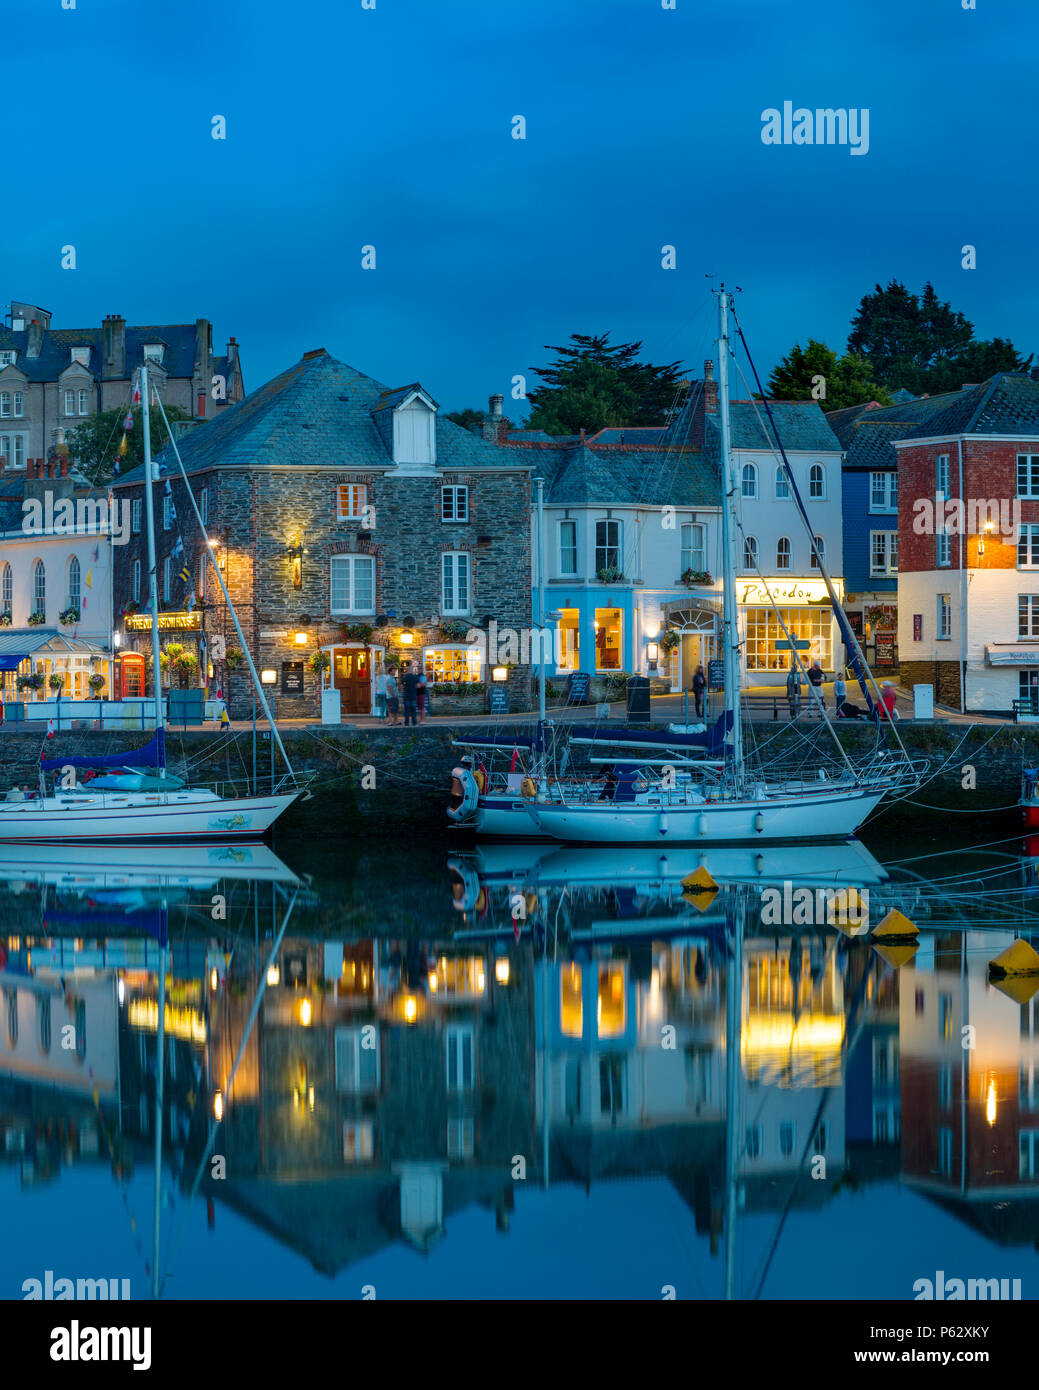 Twilight over harbor village of Padstow, Cornwall, England - Stock Image